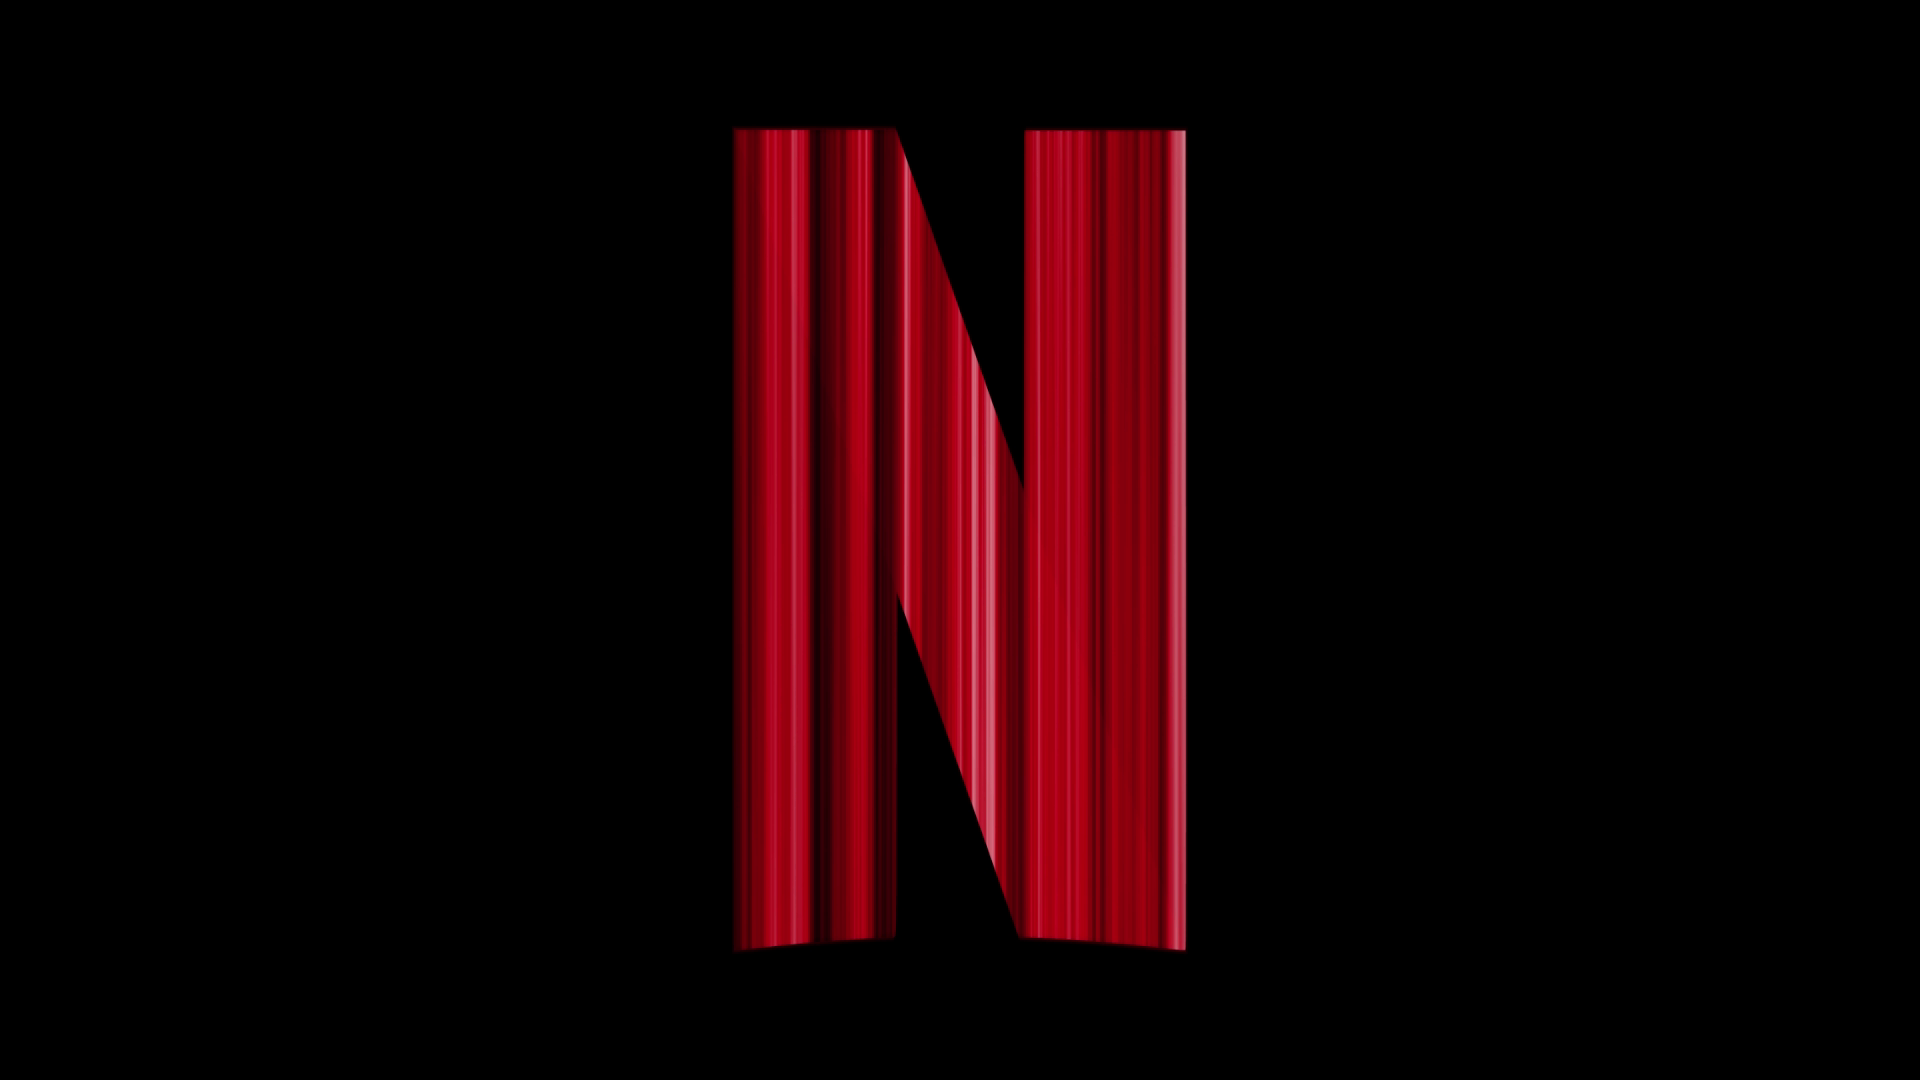 Netflix intro after effects template